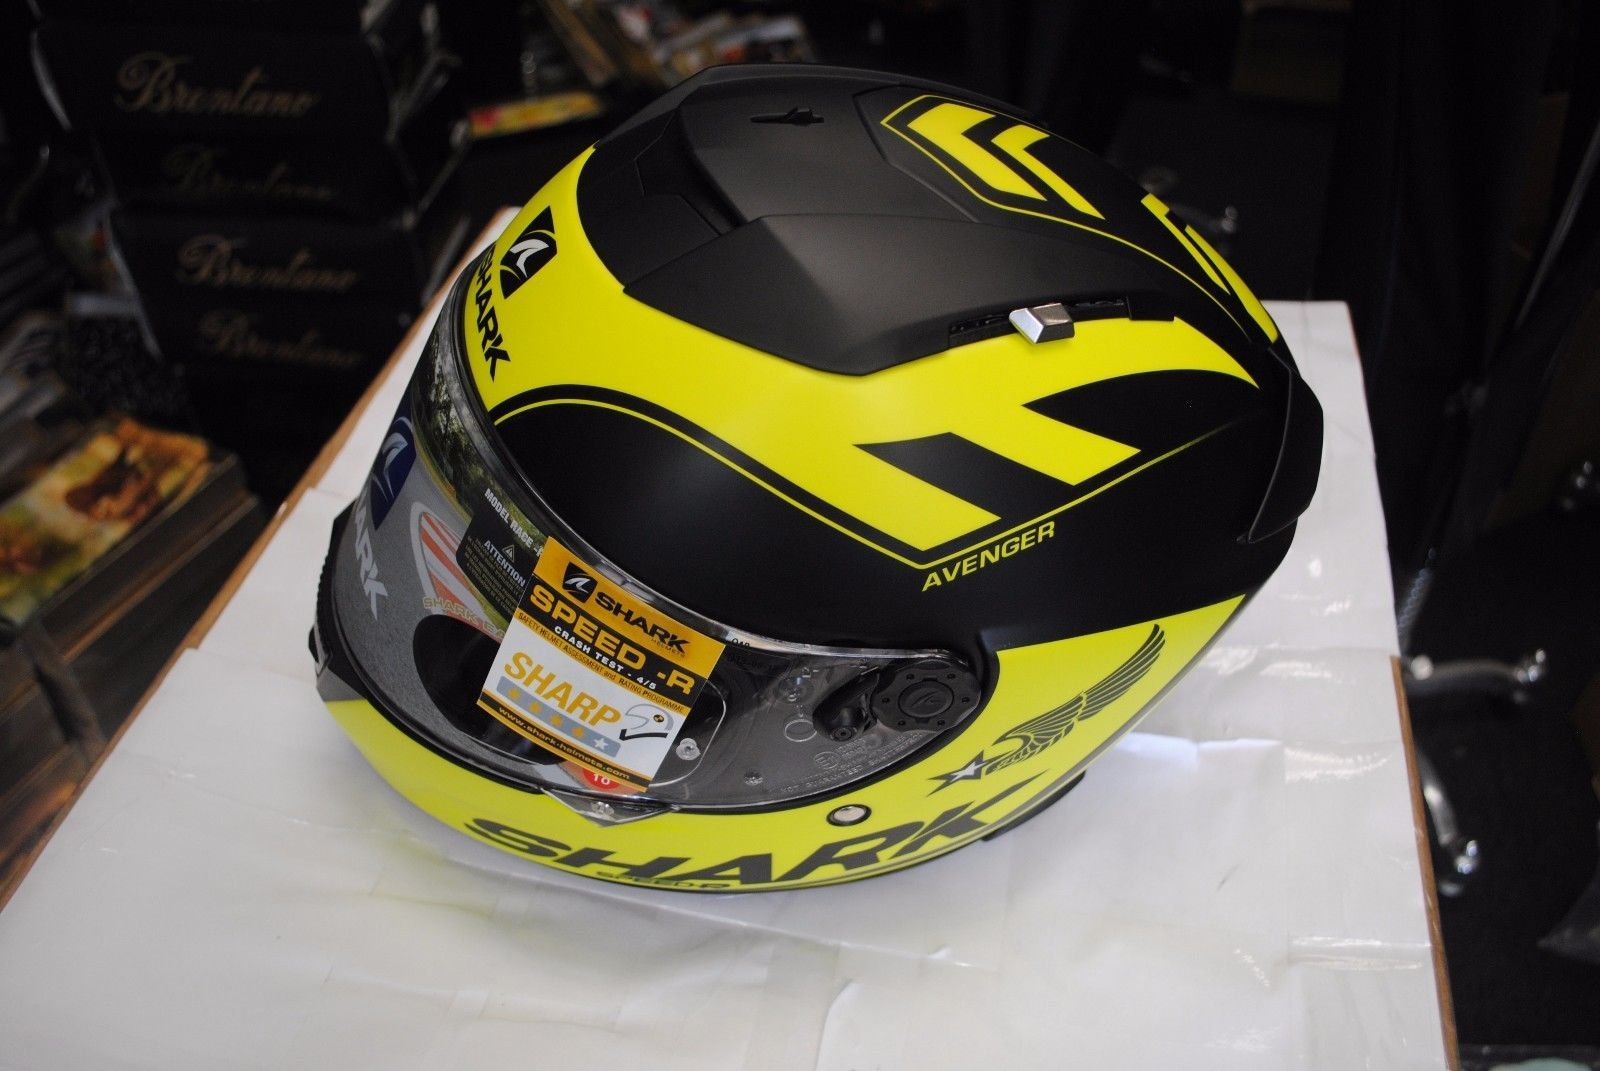 b5defb055624e  apparel Shark Speed-R Avenger Yellow Black Motorcycle Helmet Size Large  please retweet